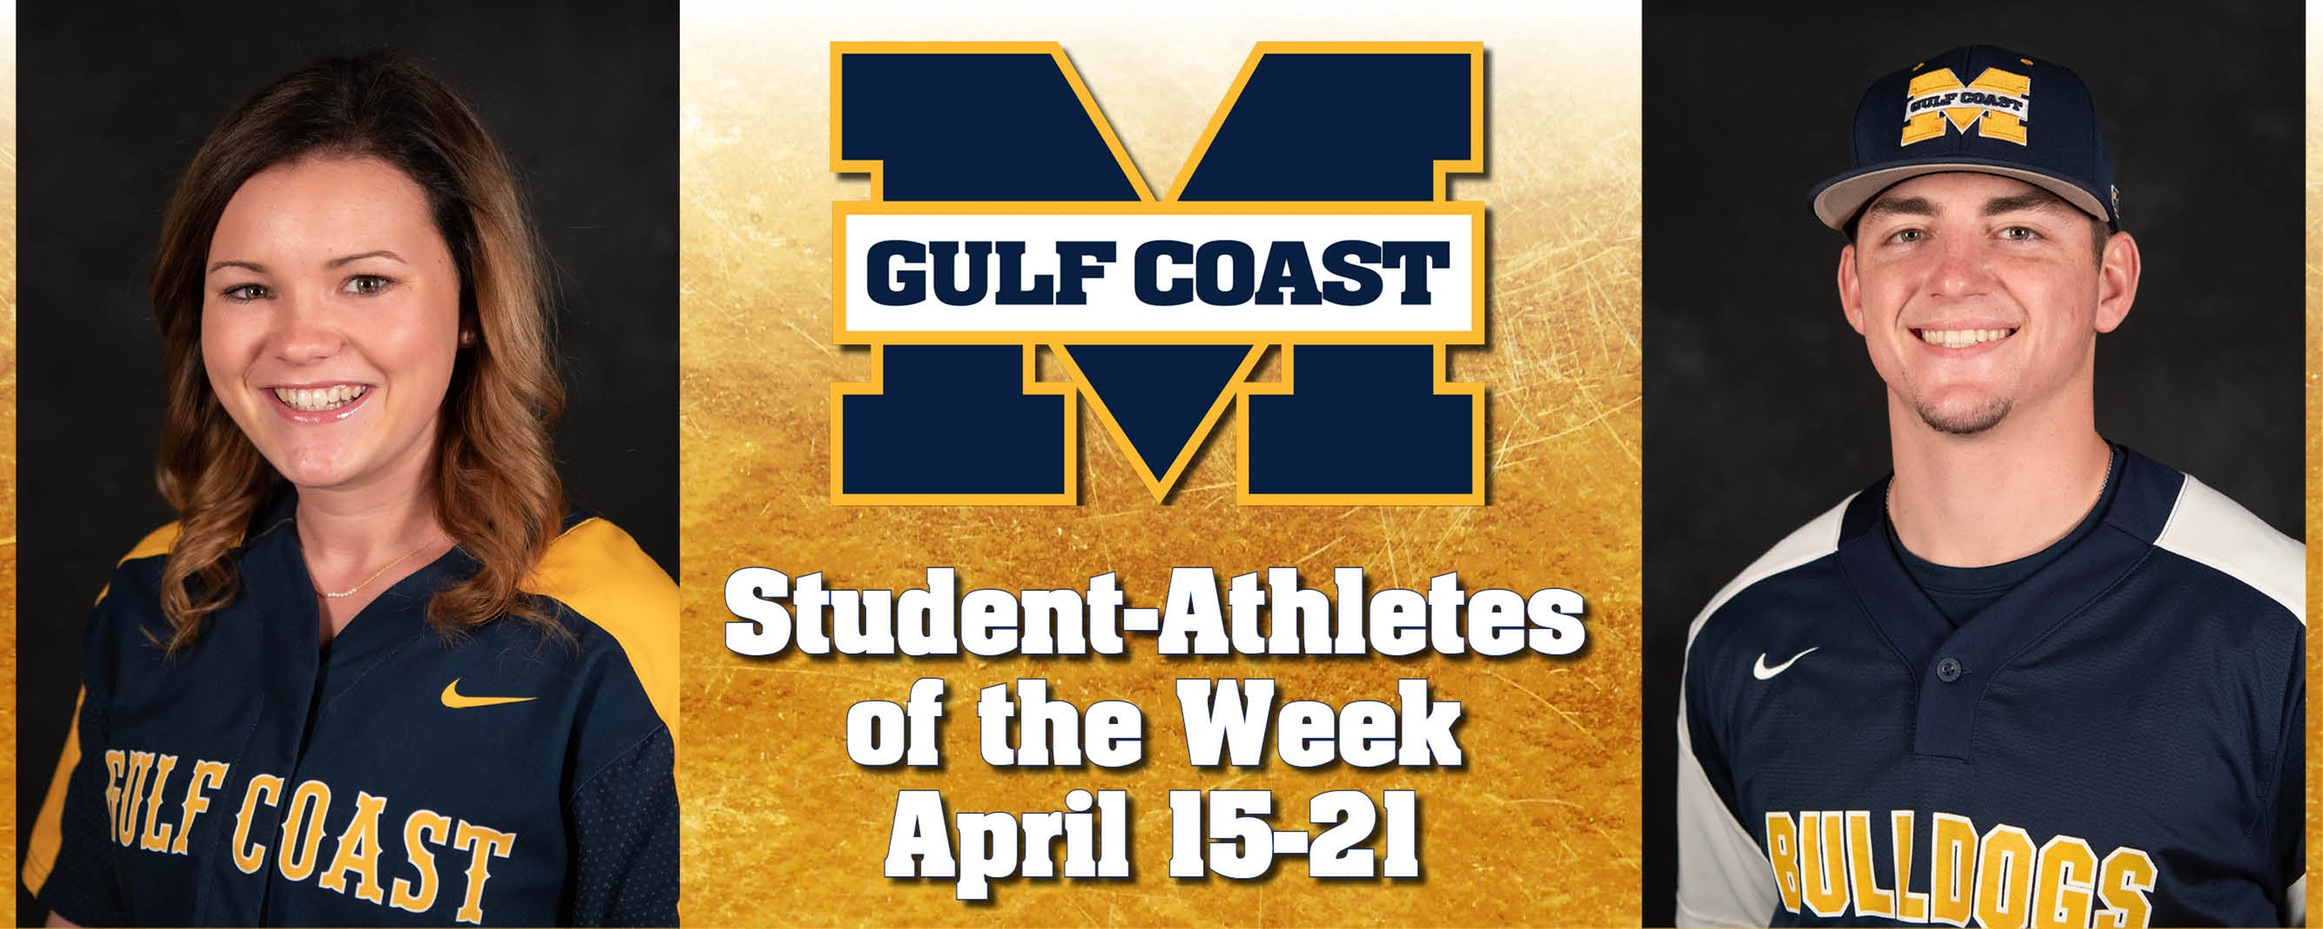 Massey, Parker named MGCCC Student-Athletes of the Week